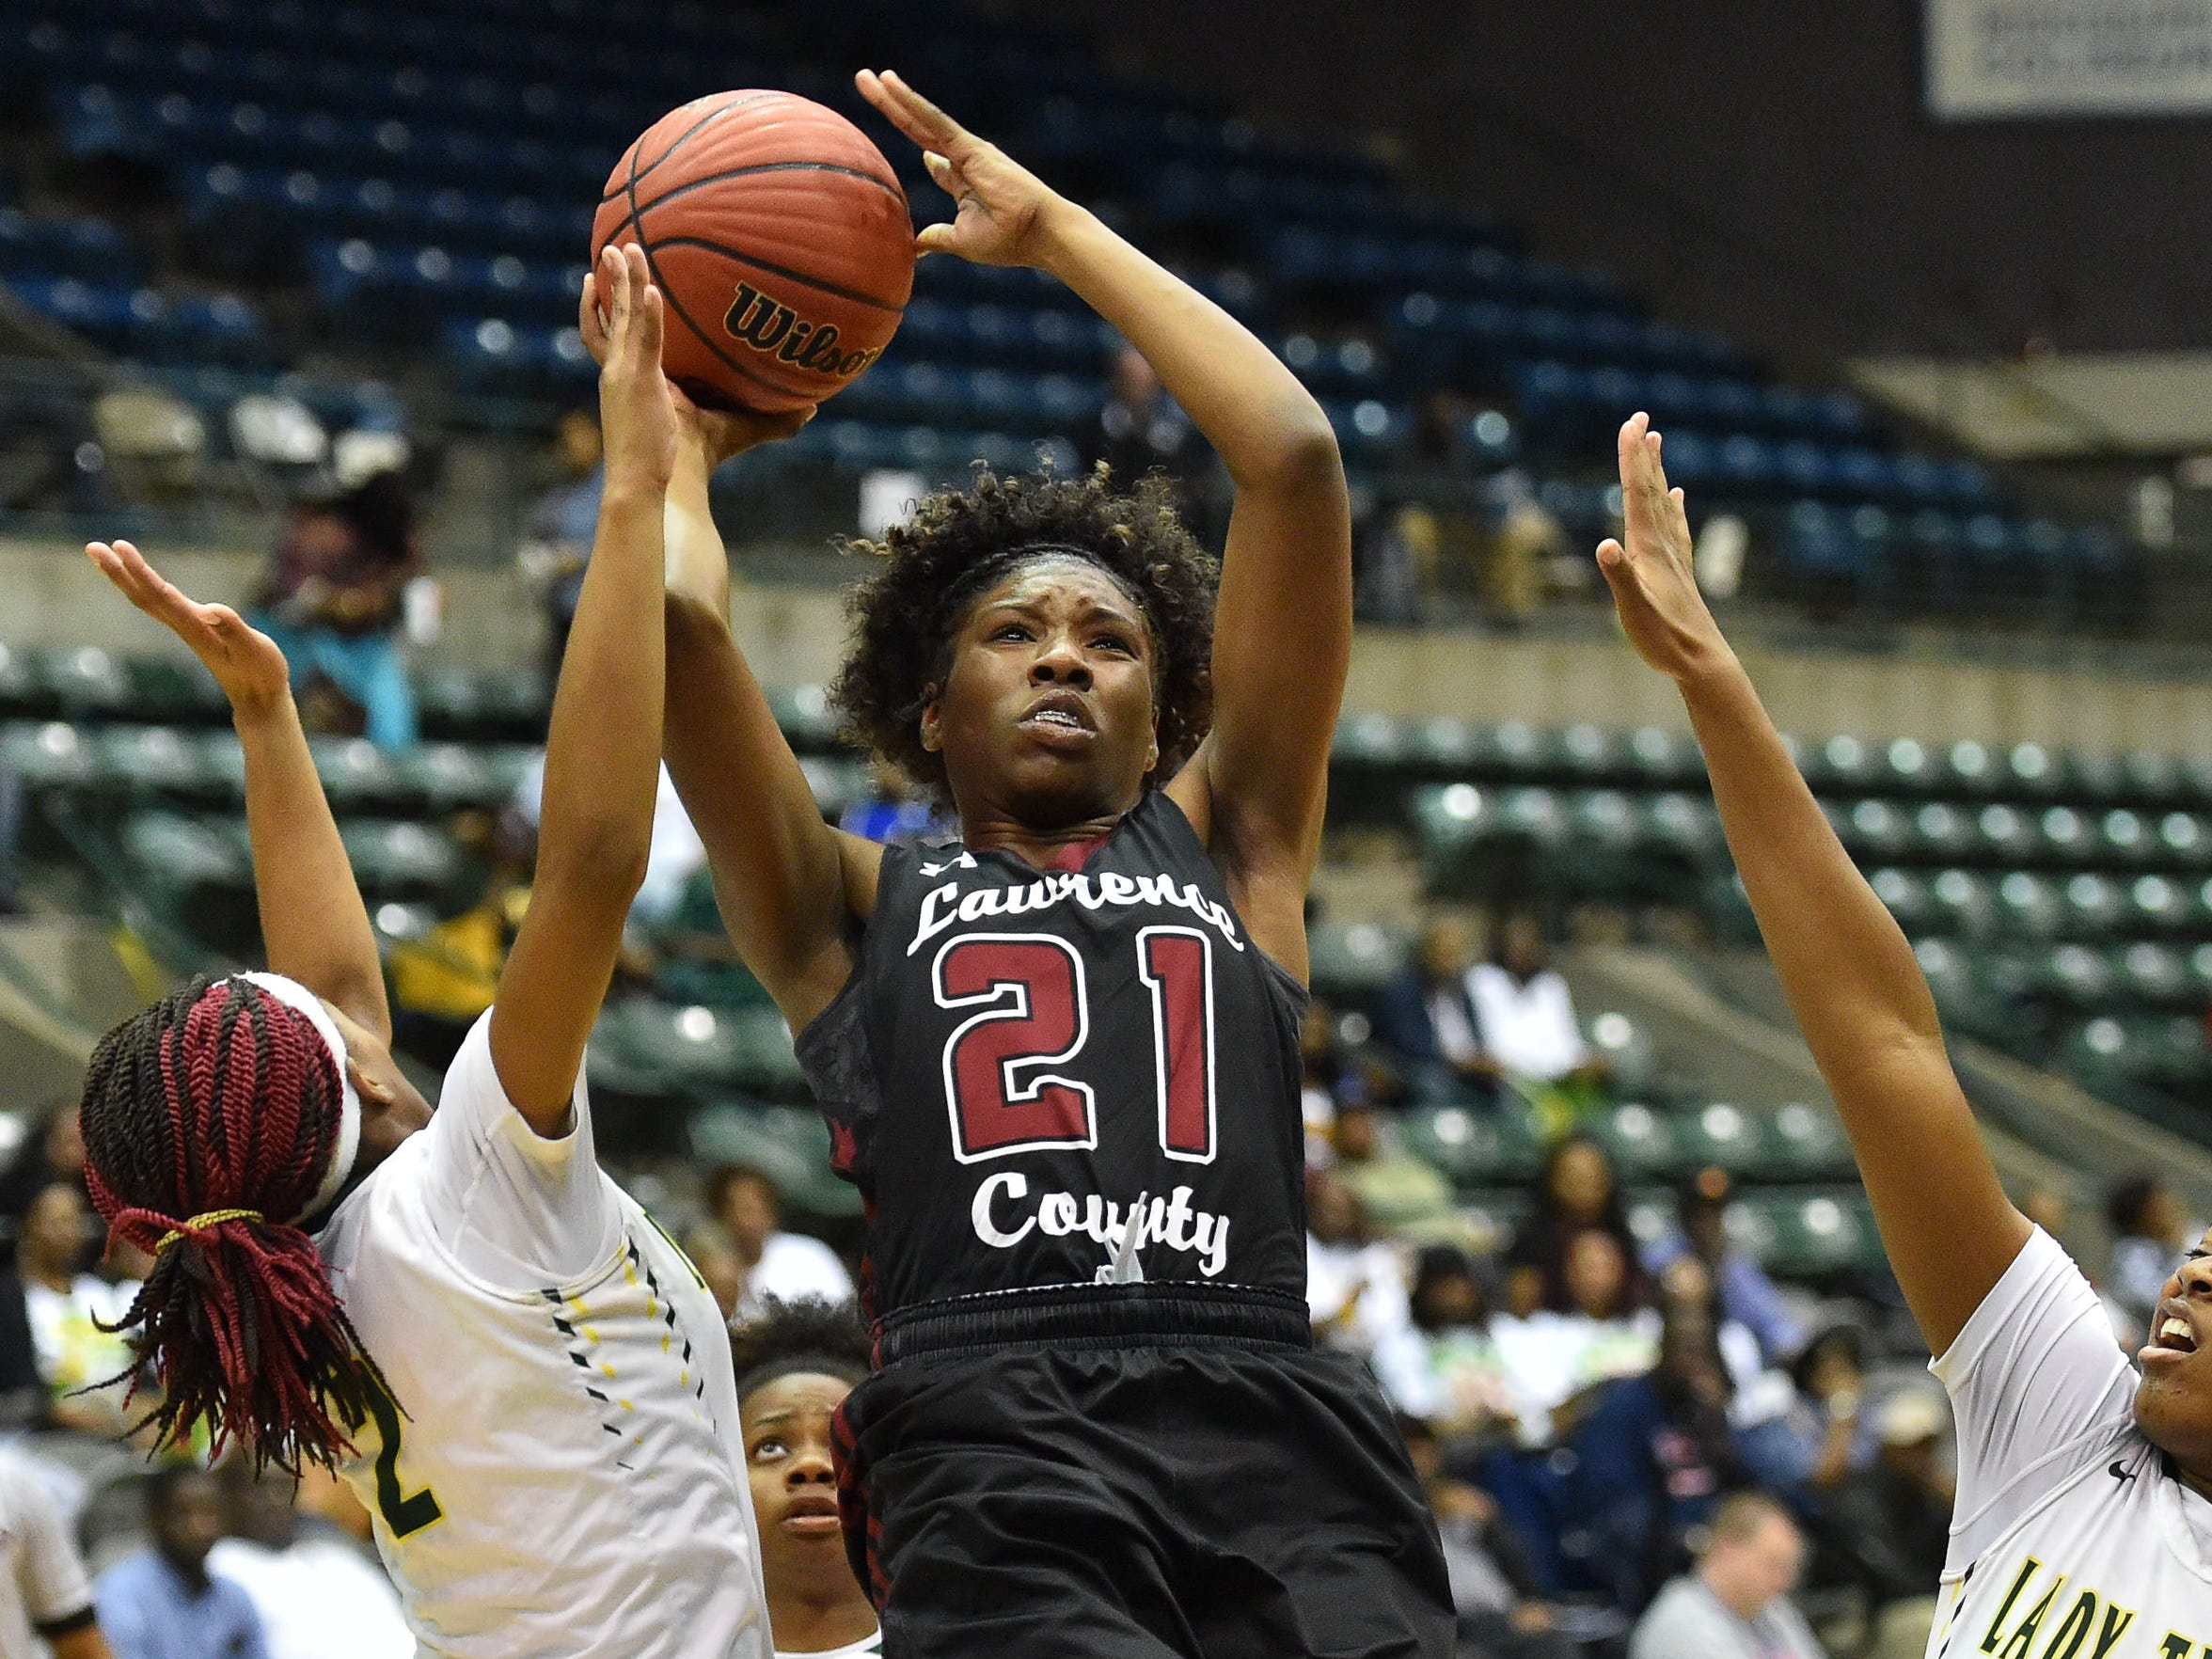 Lawrence County's Kyunna Thomas (21) shoots against McComb during the MHSAA Girls 4A Tournament held at The Coliseum in Jackson MS.(Photo/Bob Smith)